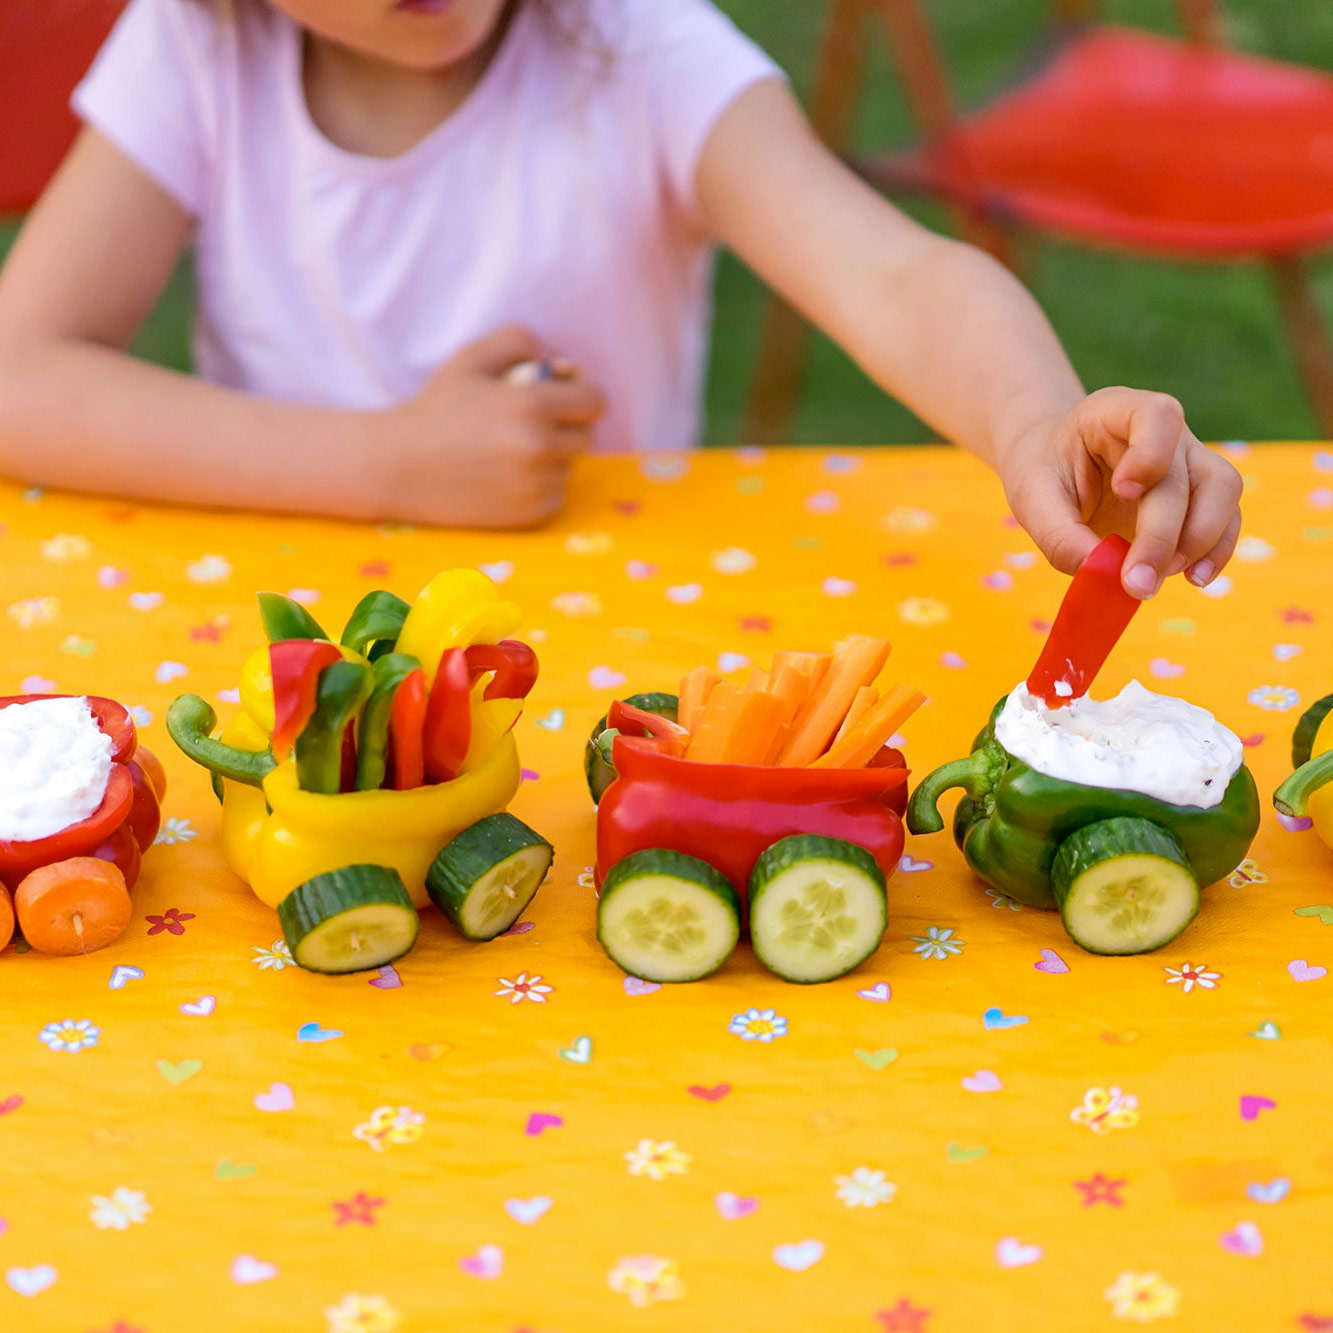 Healthy Kids Party Food Ideas to Curb the Sugar Rush